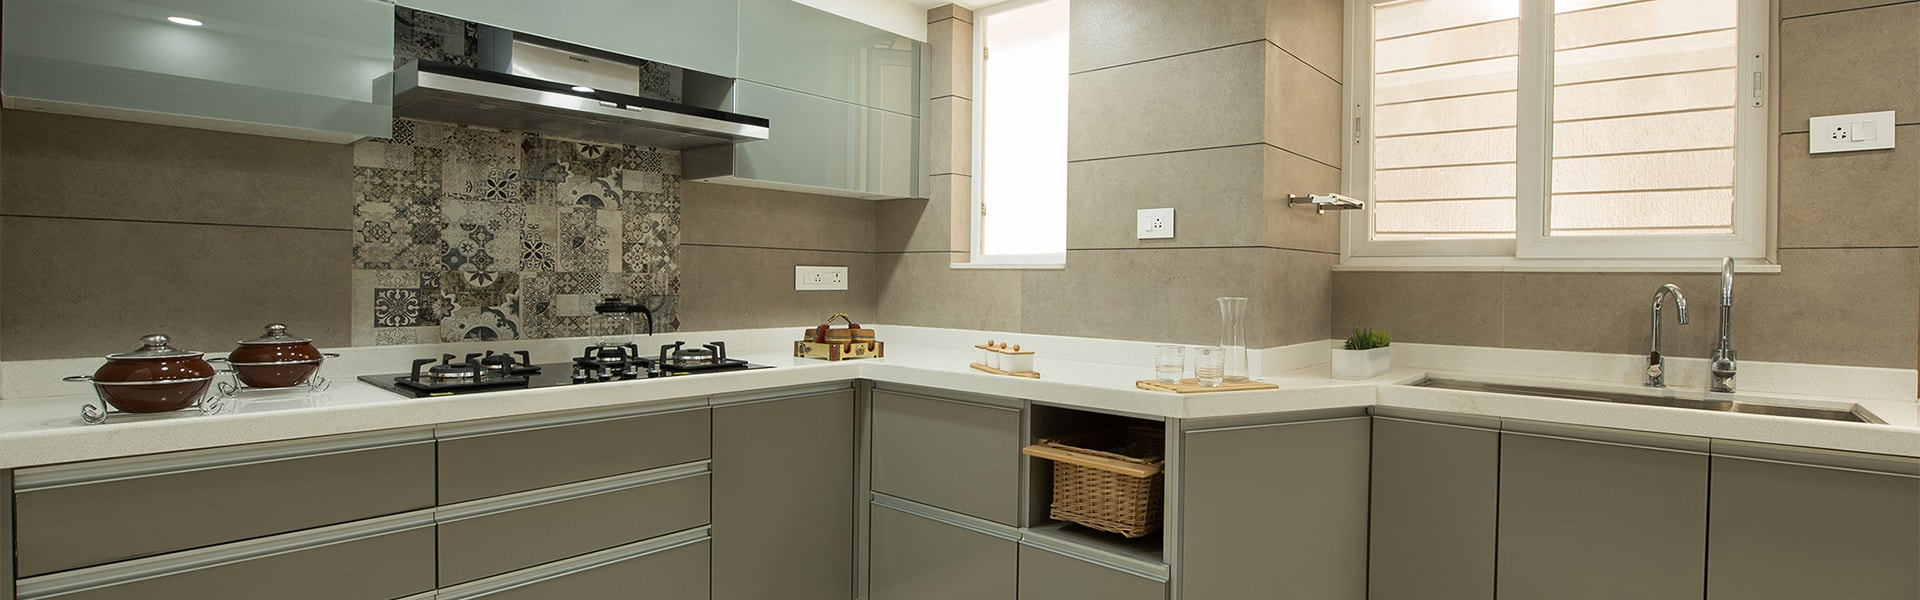 online modular kitchen design